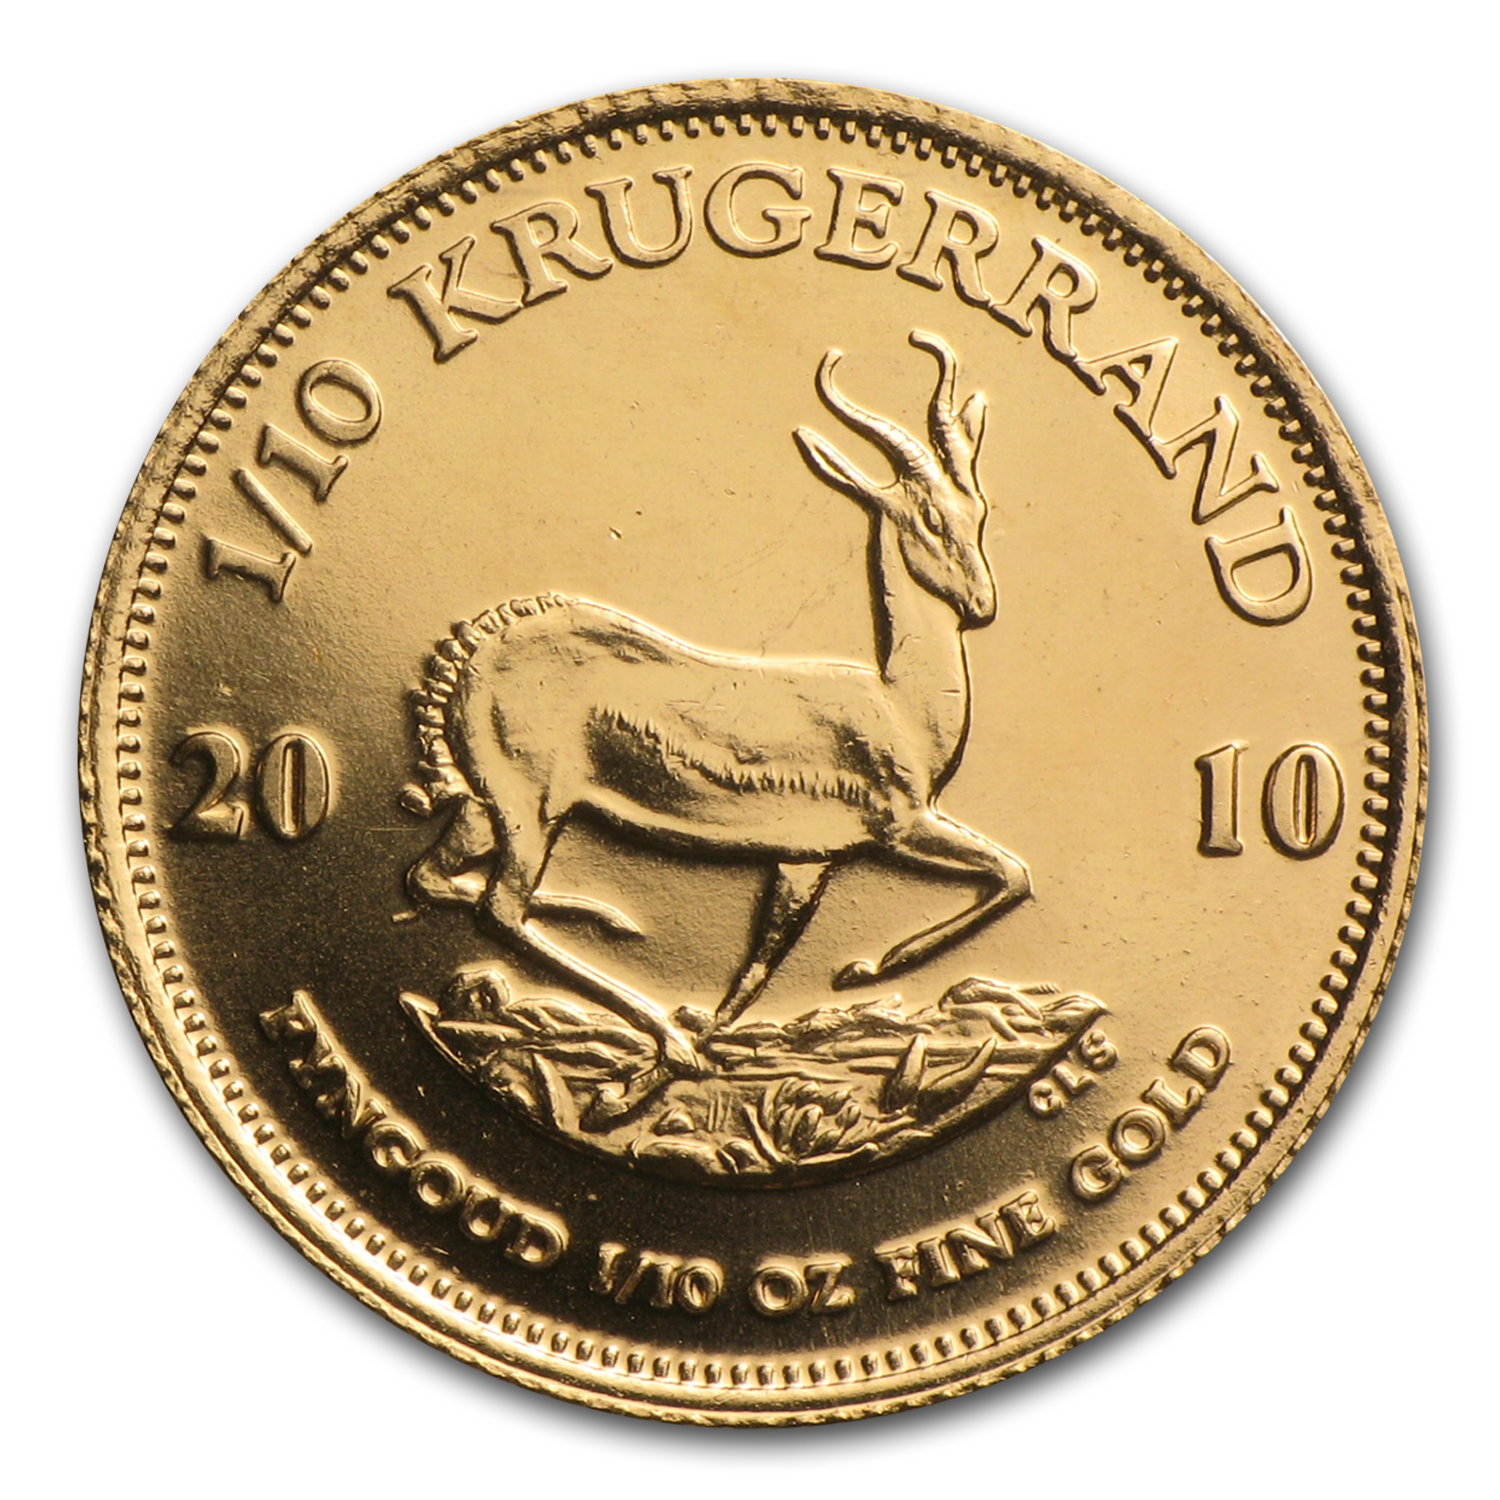 2010 South Africa 1/10 oz Gold Krugerrand